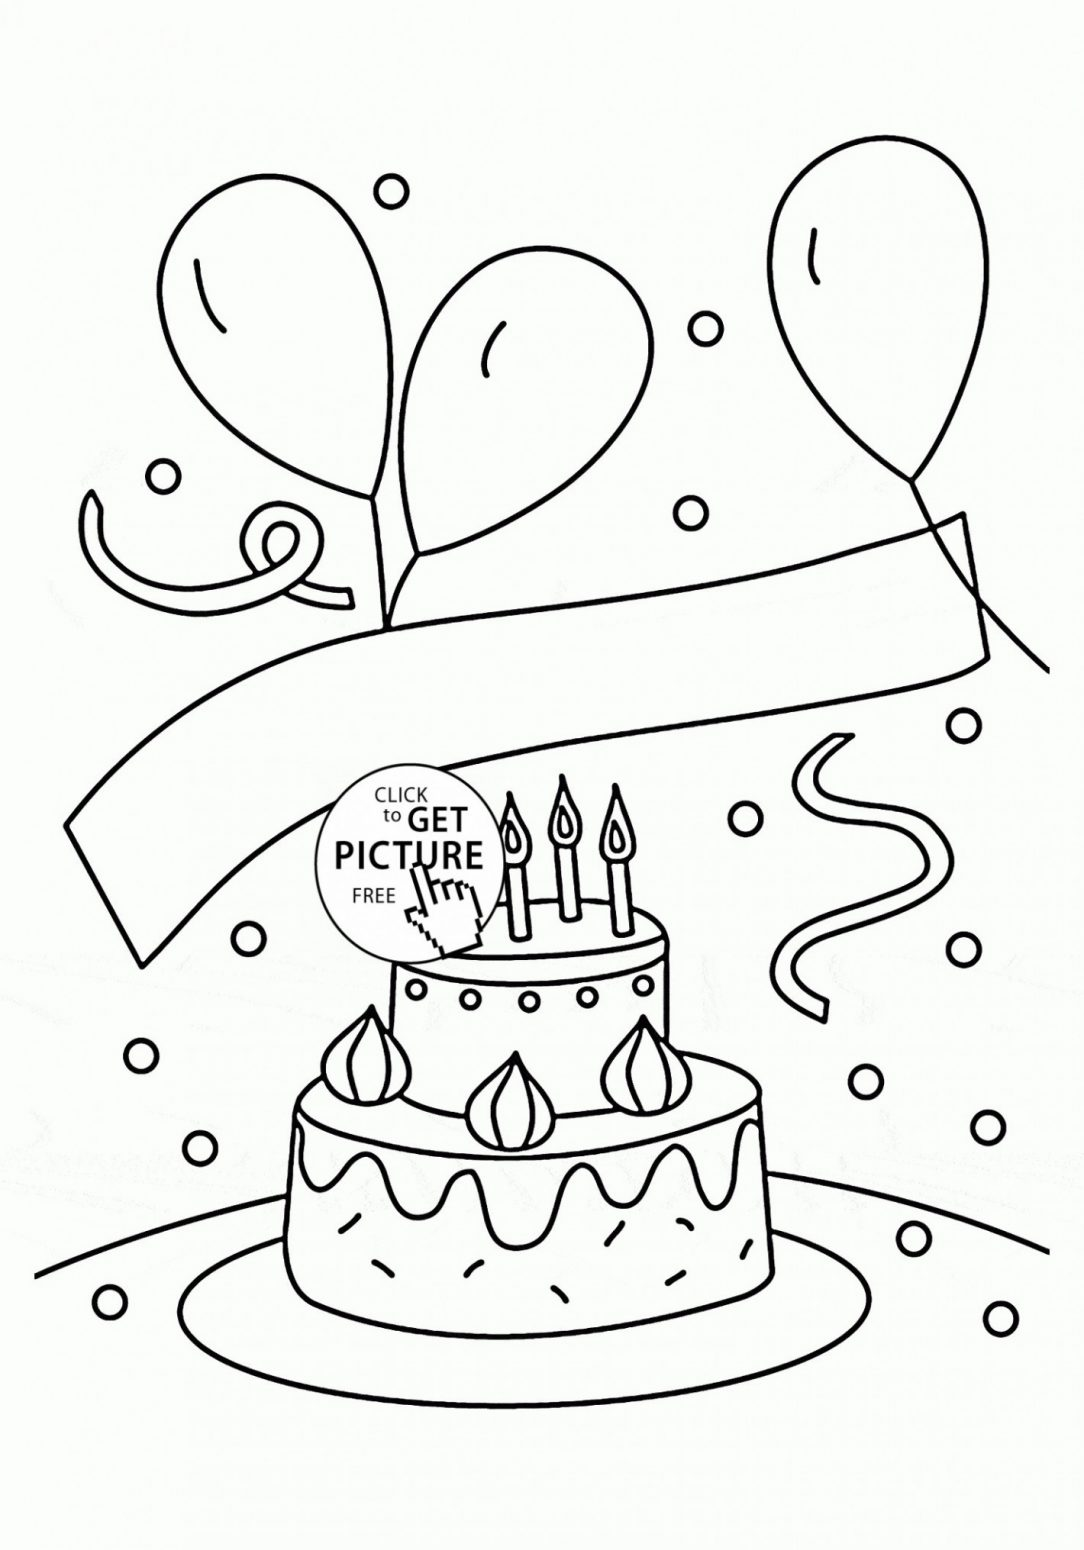 Coloring back to school. Free clipart birthday backpages